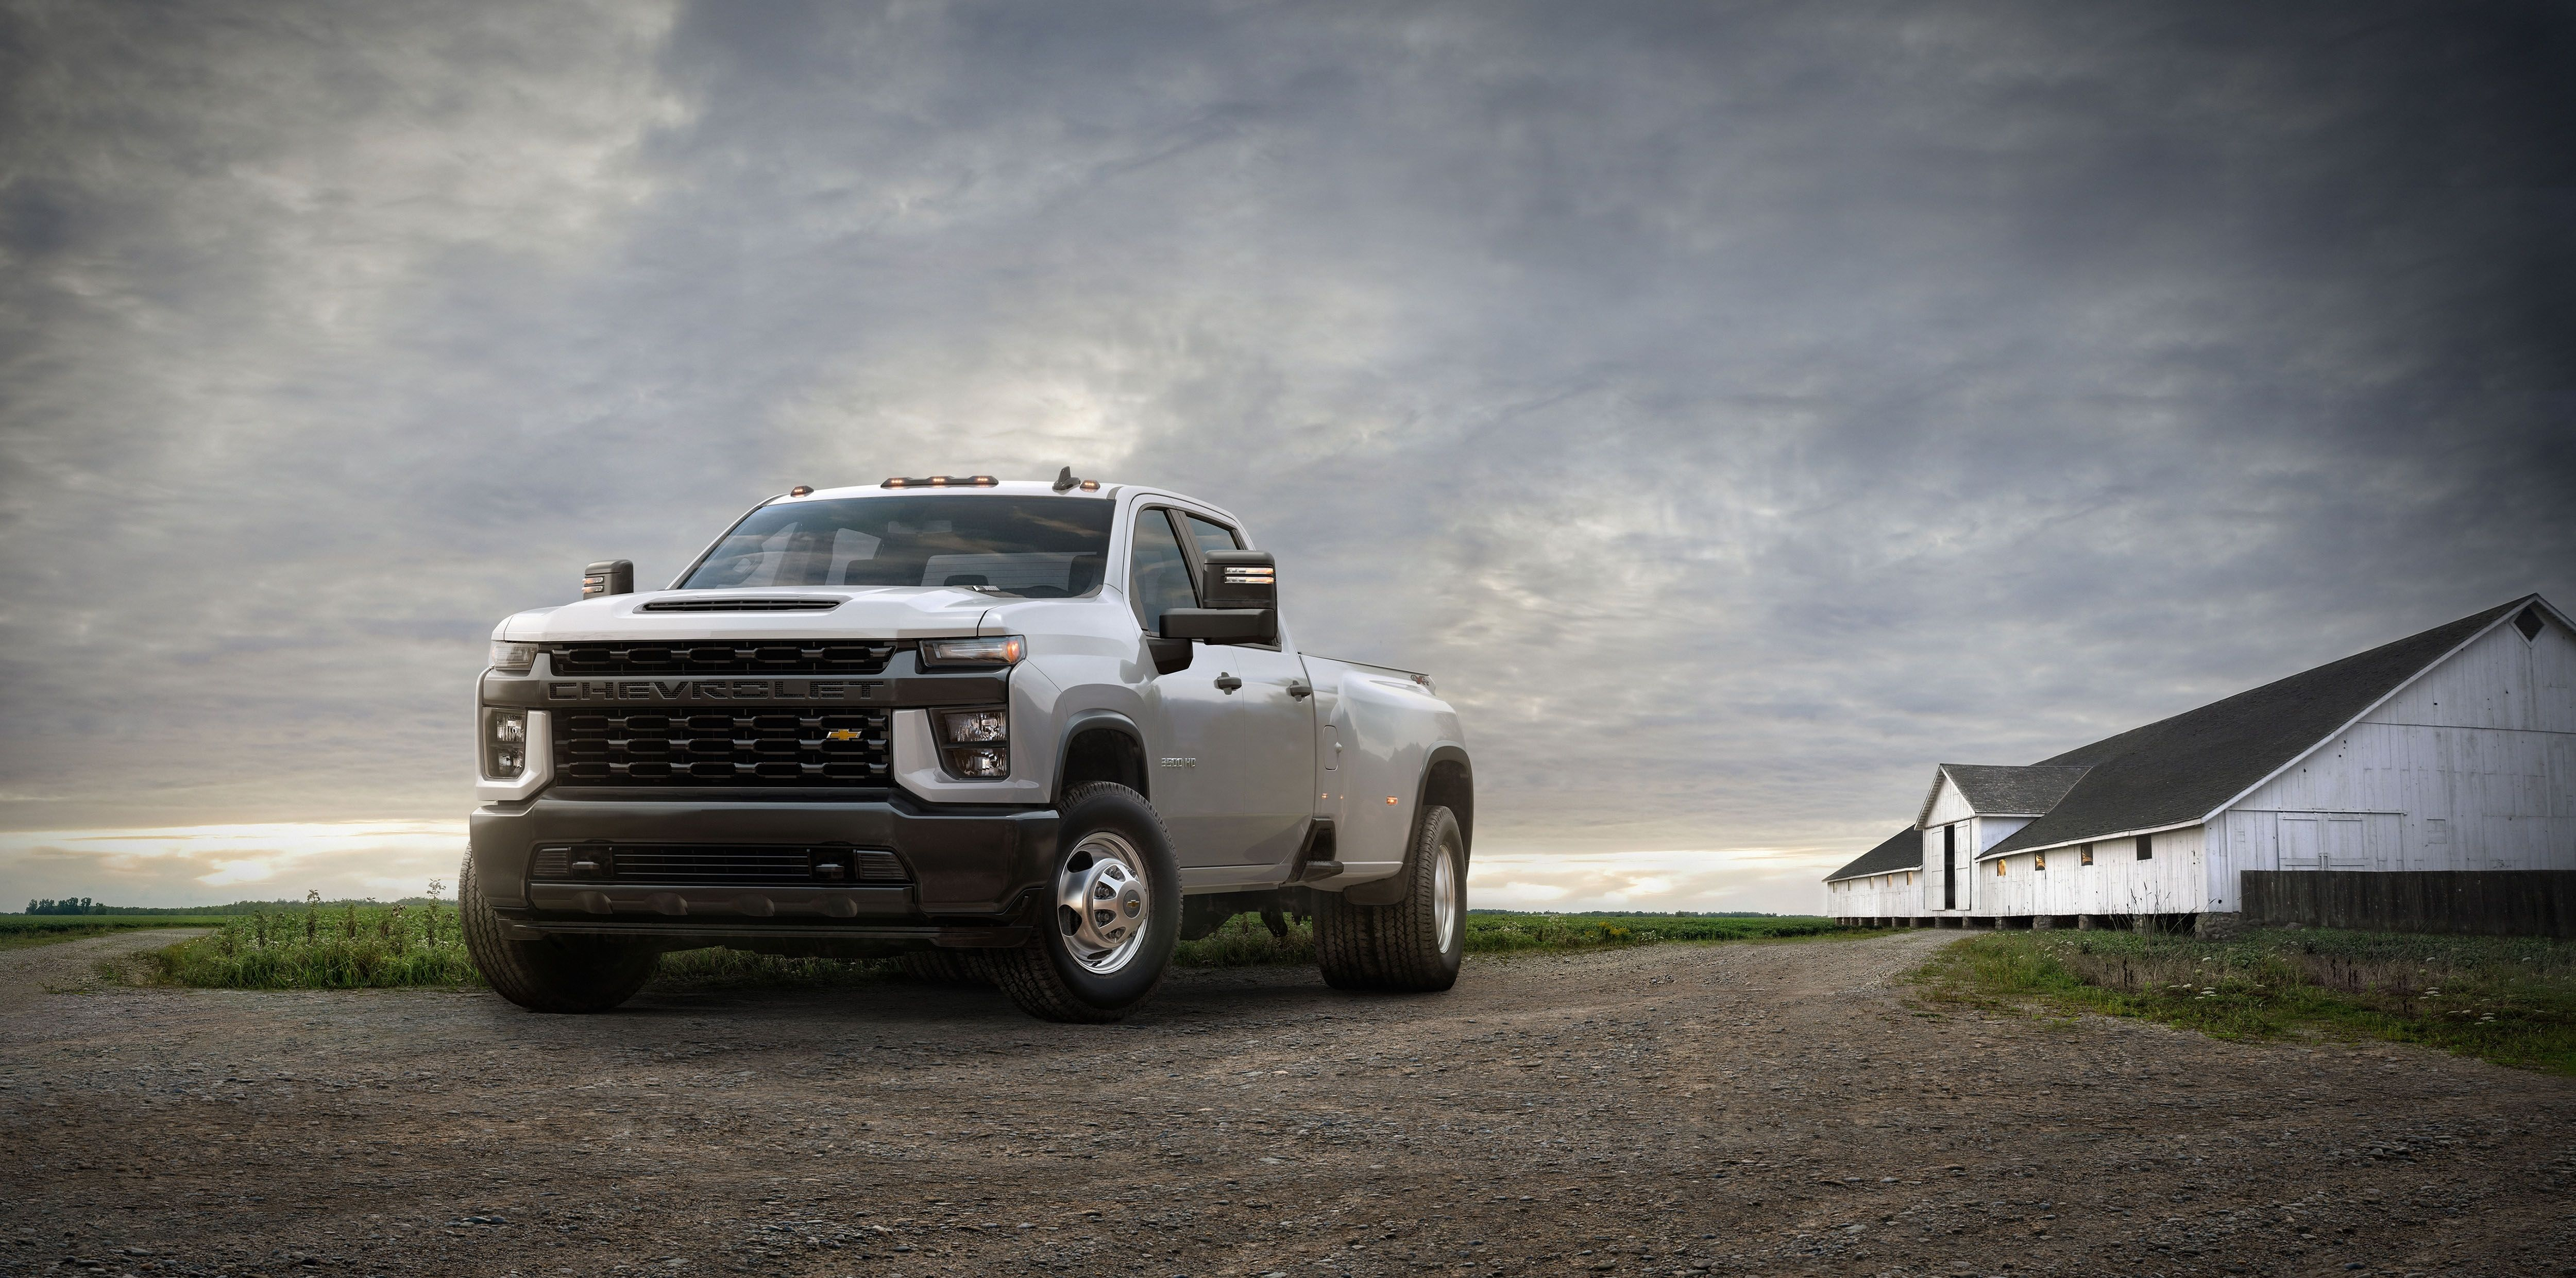 The 2020 Chevy 3500 Picture With Images Chevrolet Silverado Silverado Hd Chevy Silverado